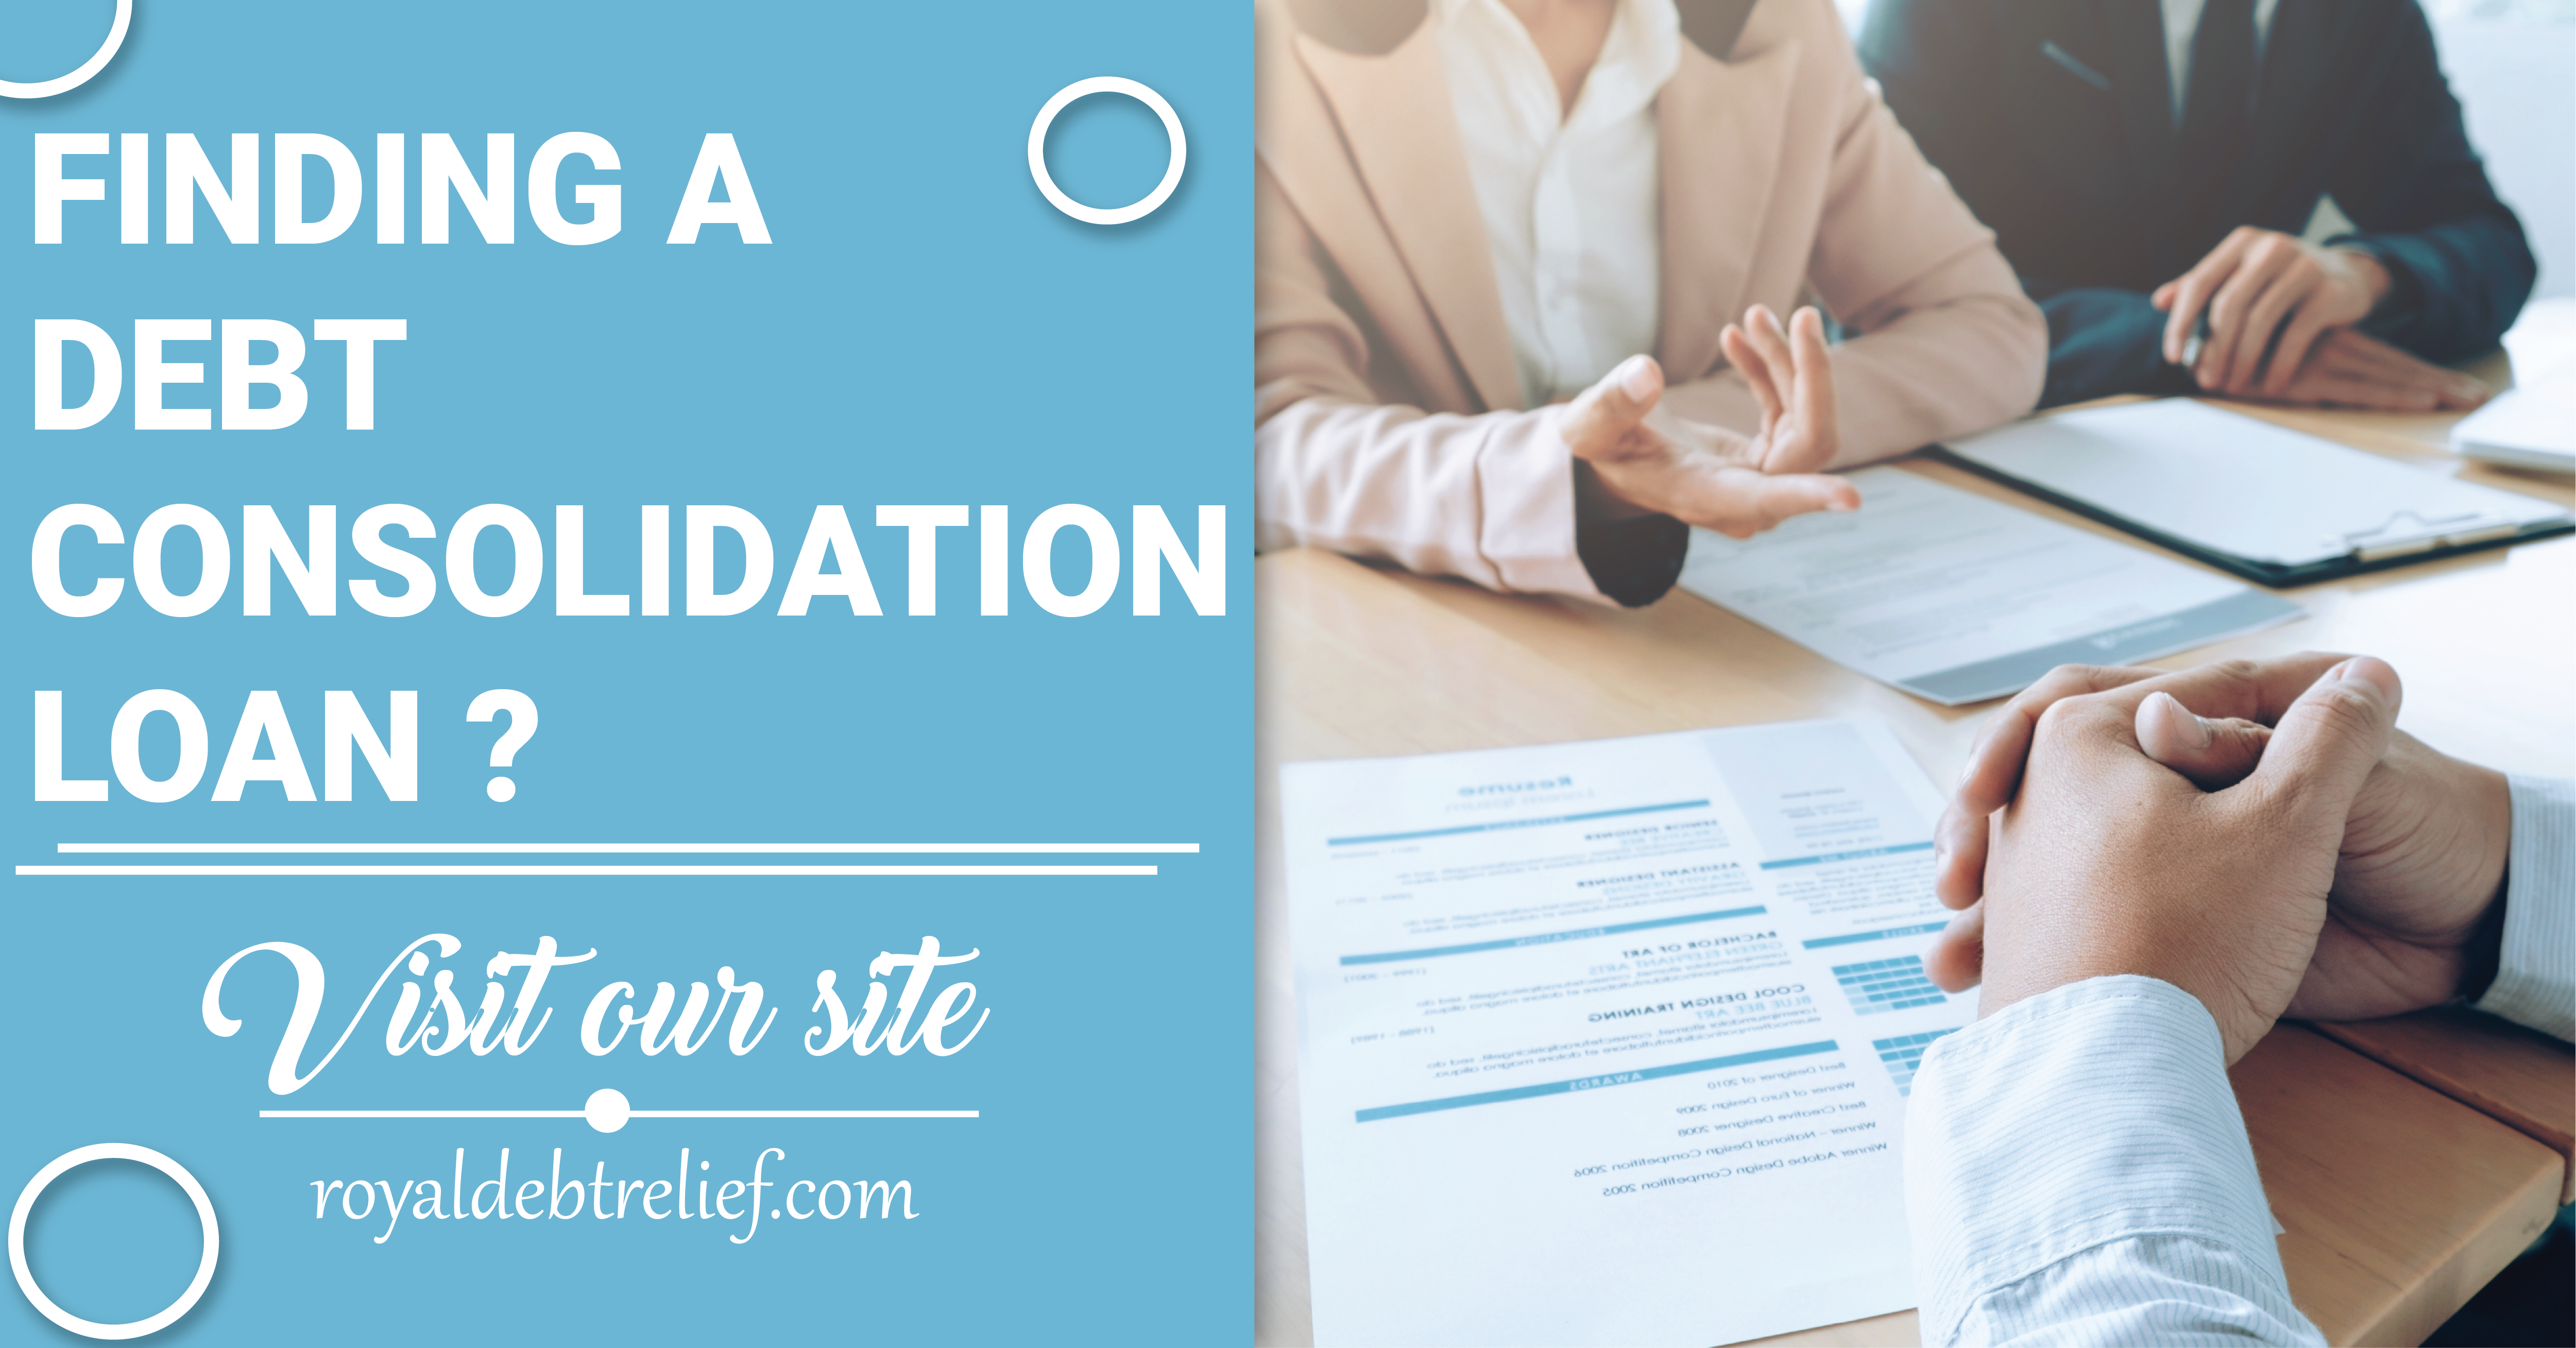 You Can Contact A Bank Credit Union Or A Financial Company To Approve A Consolidation Loan To Credit Card Debt Settlement Debt Consolidation Loans Debt Relief